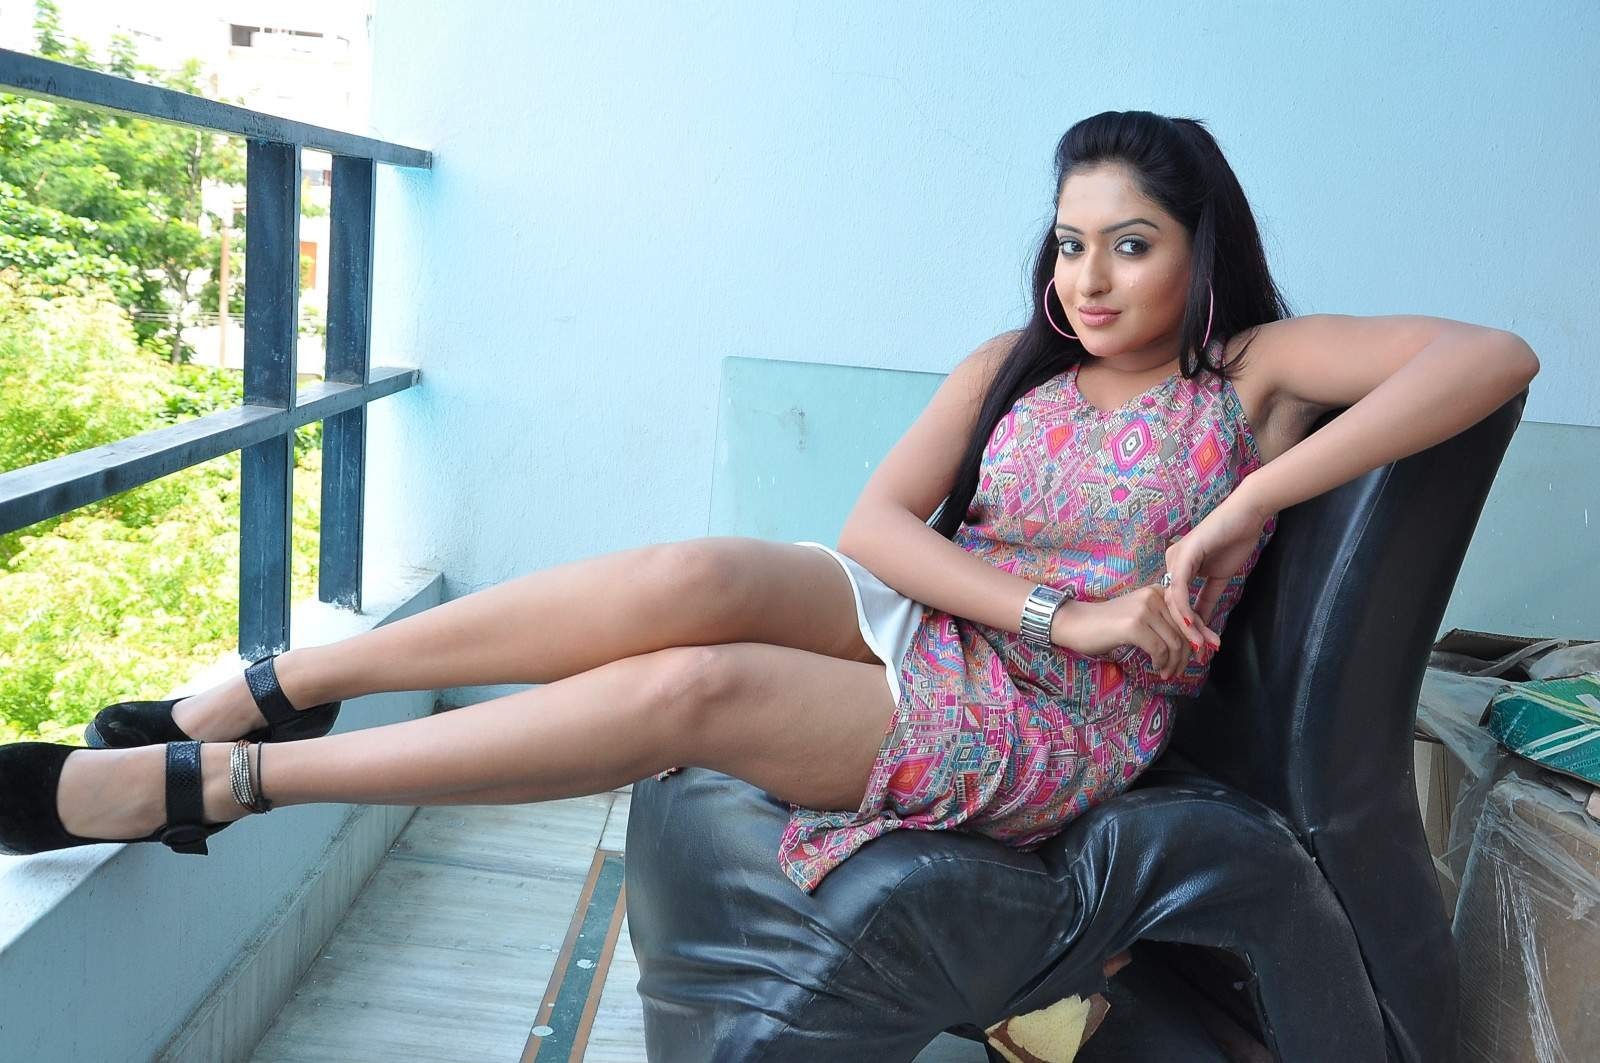 Preet kaur is here to give you immense pleasure - 1 3